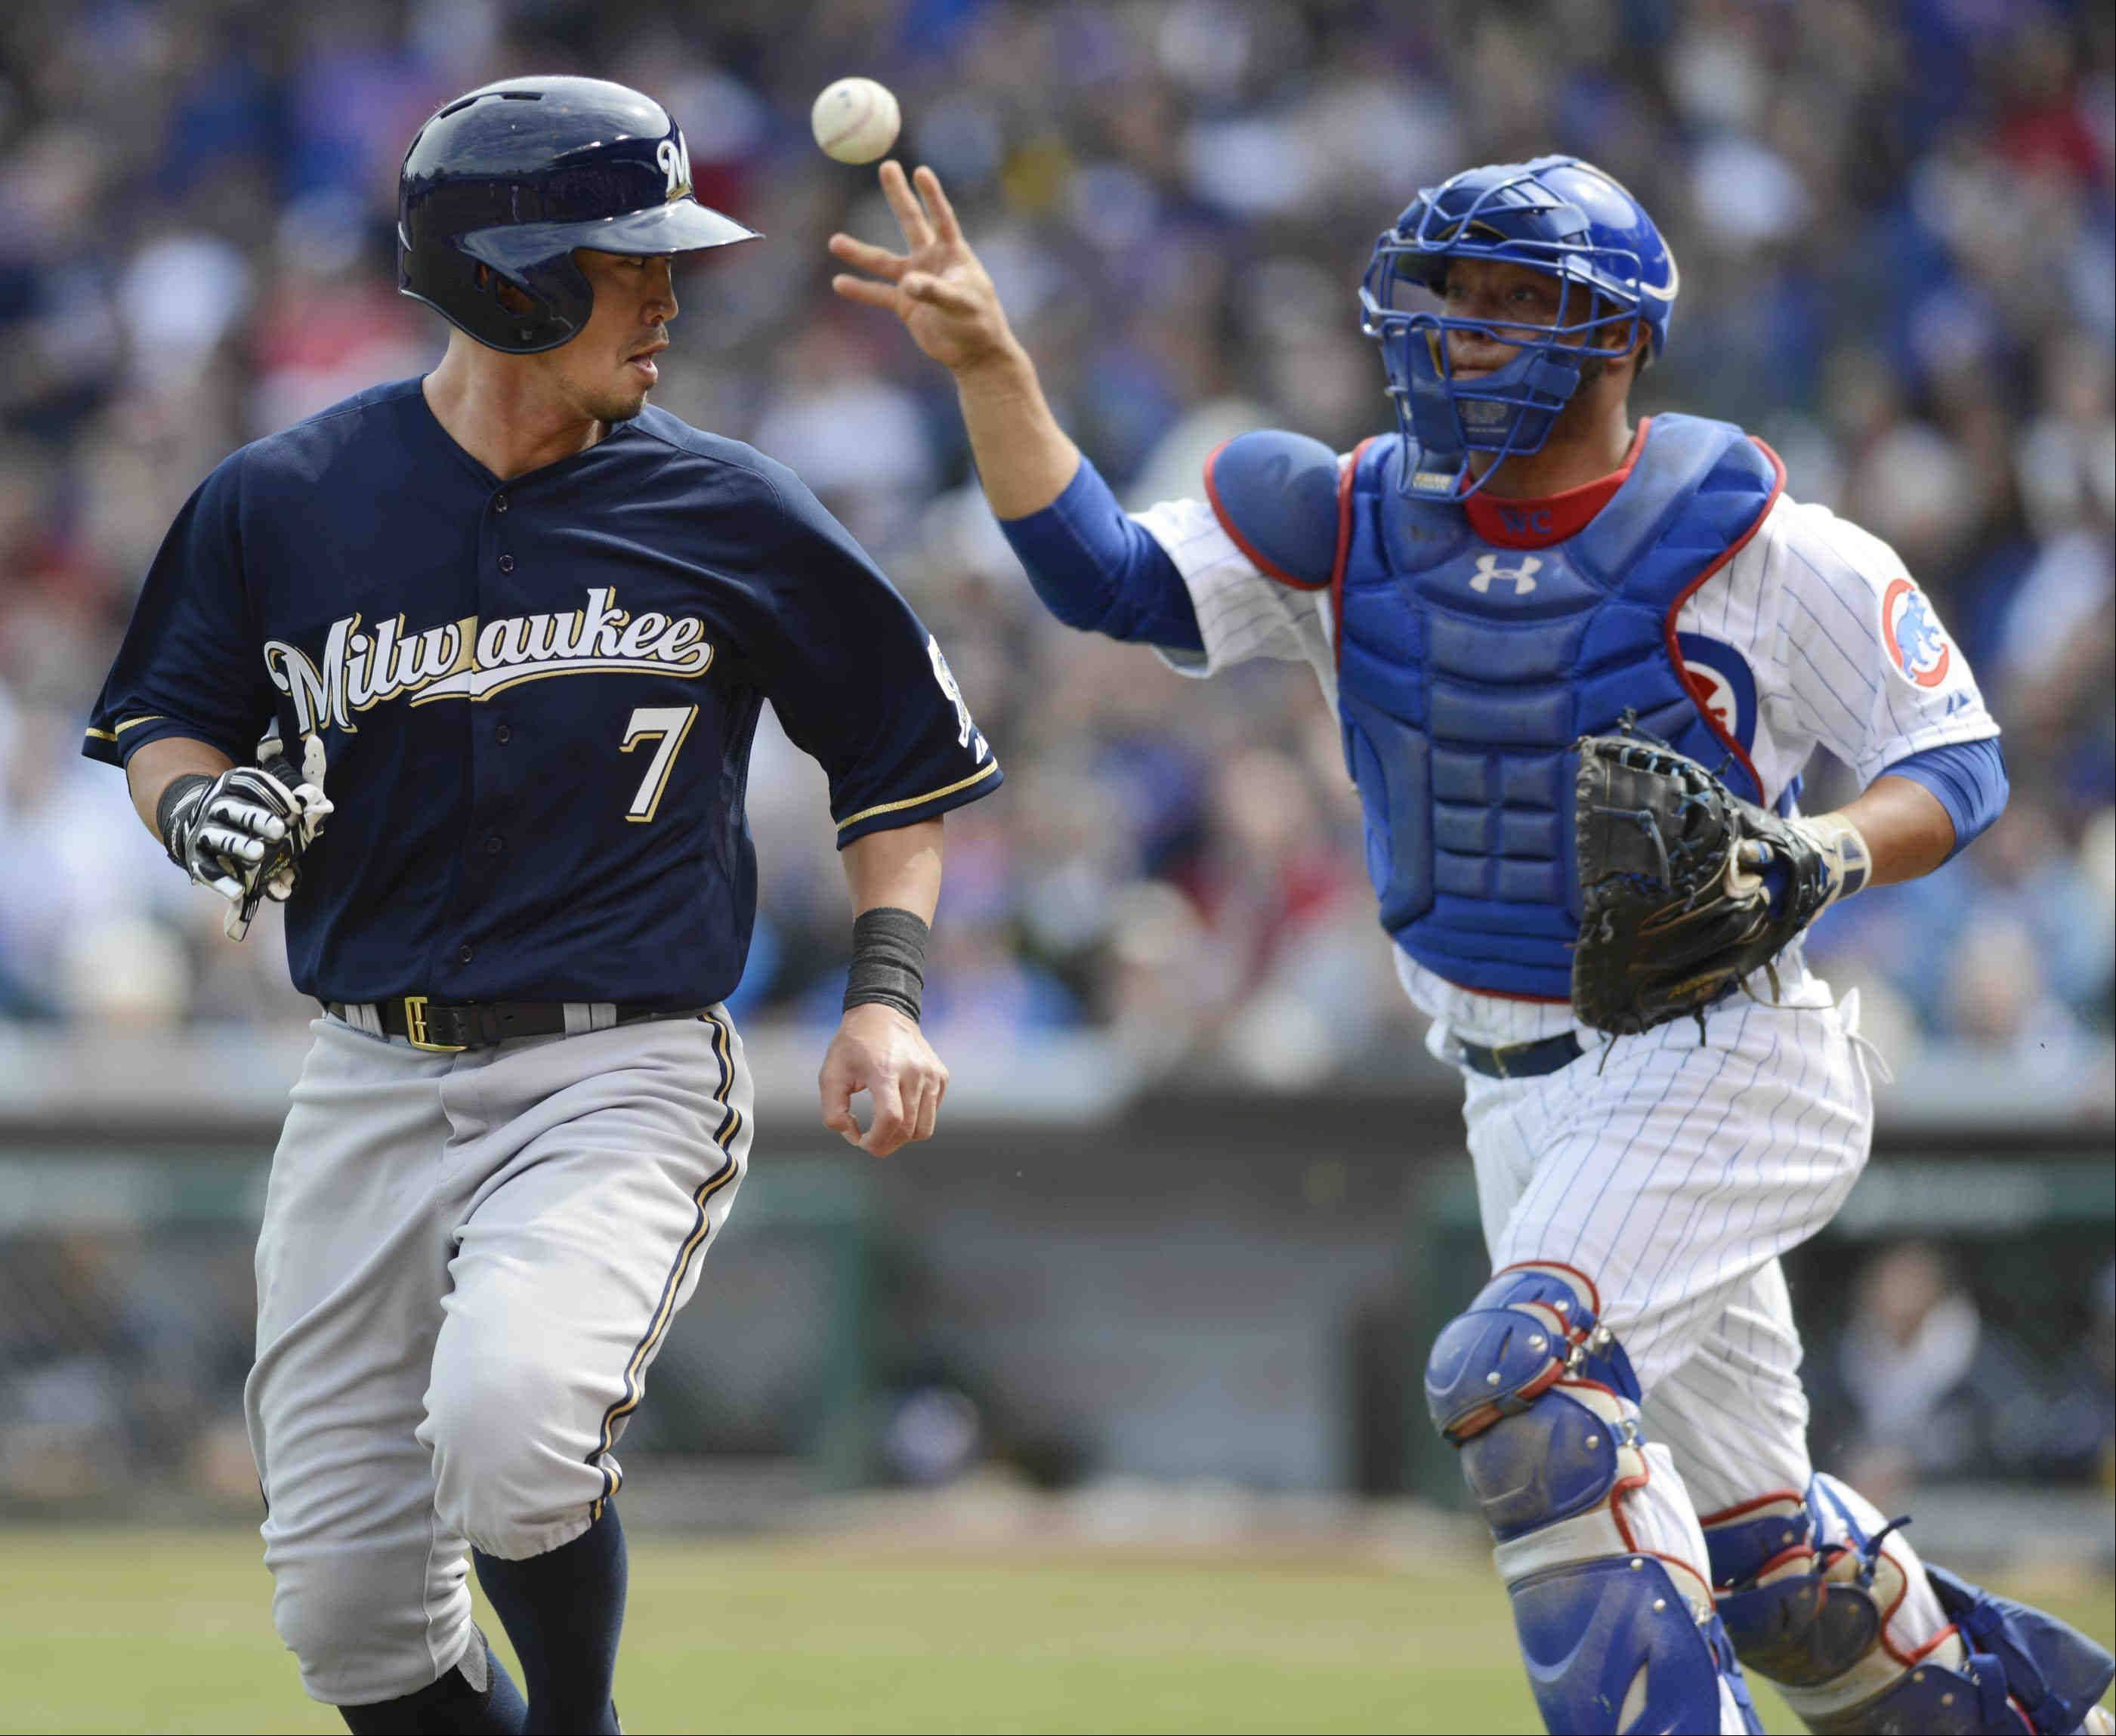 Cubs catcher Welington Castillo tosses the ball to teammate third baseman Luis Valbuena to tag out Milwaukee Brewers' Milwaukee Brewers right fielder Norichika Aoki at Monday's Wrigley Field home-opener. Aoki was trying to score from third on a hit by Ricky Weeks.